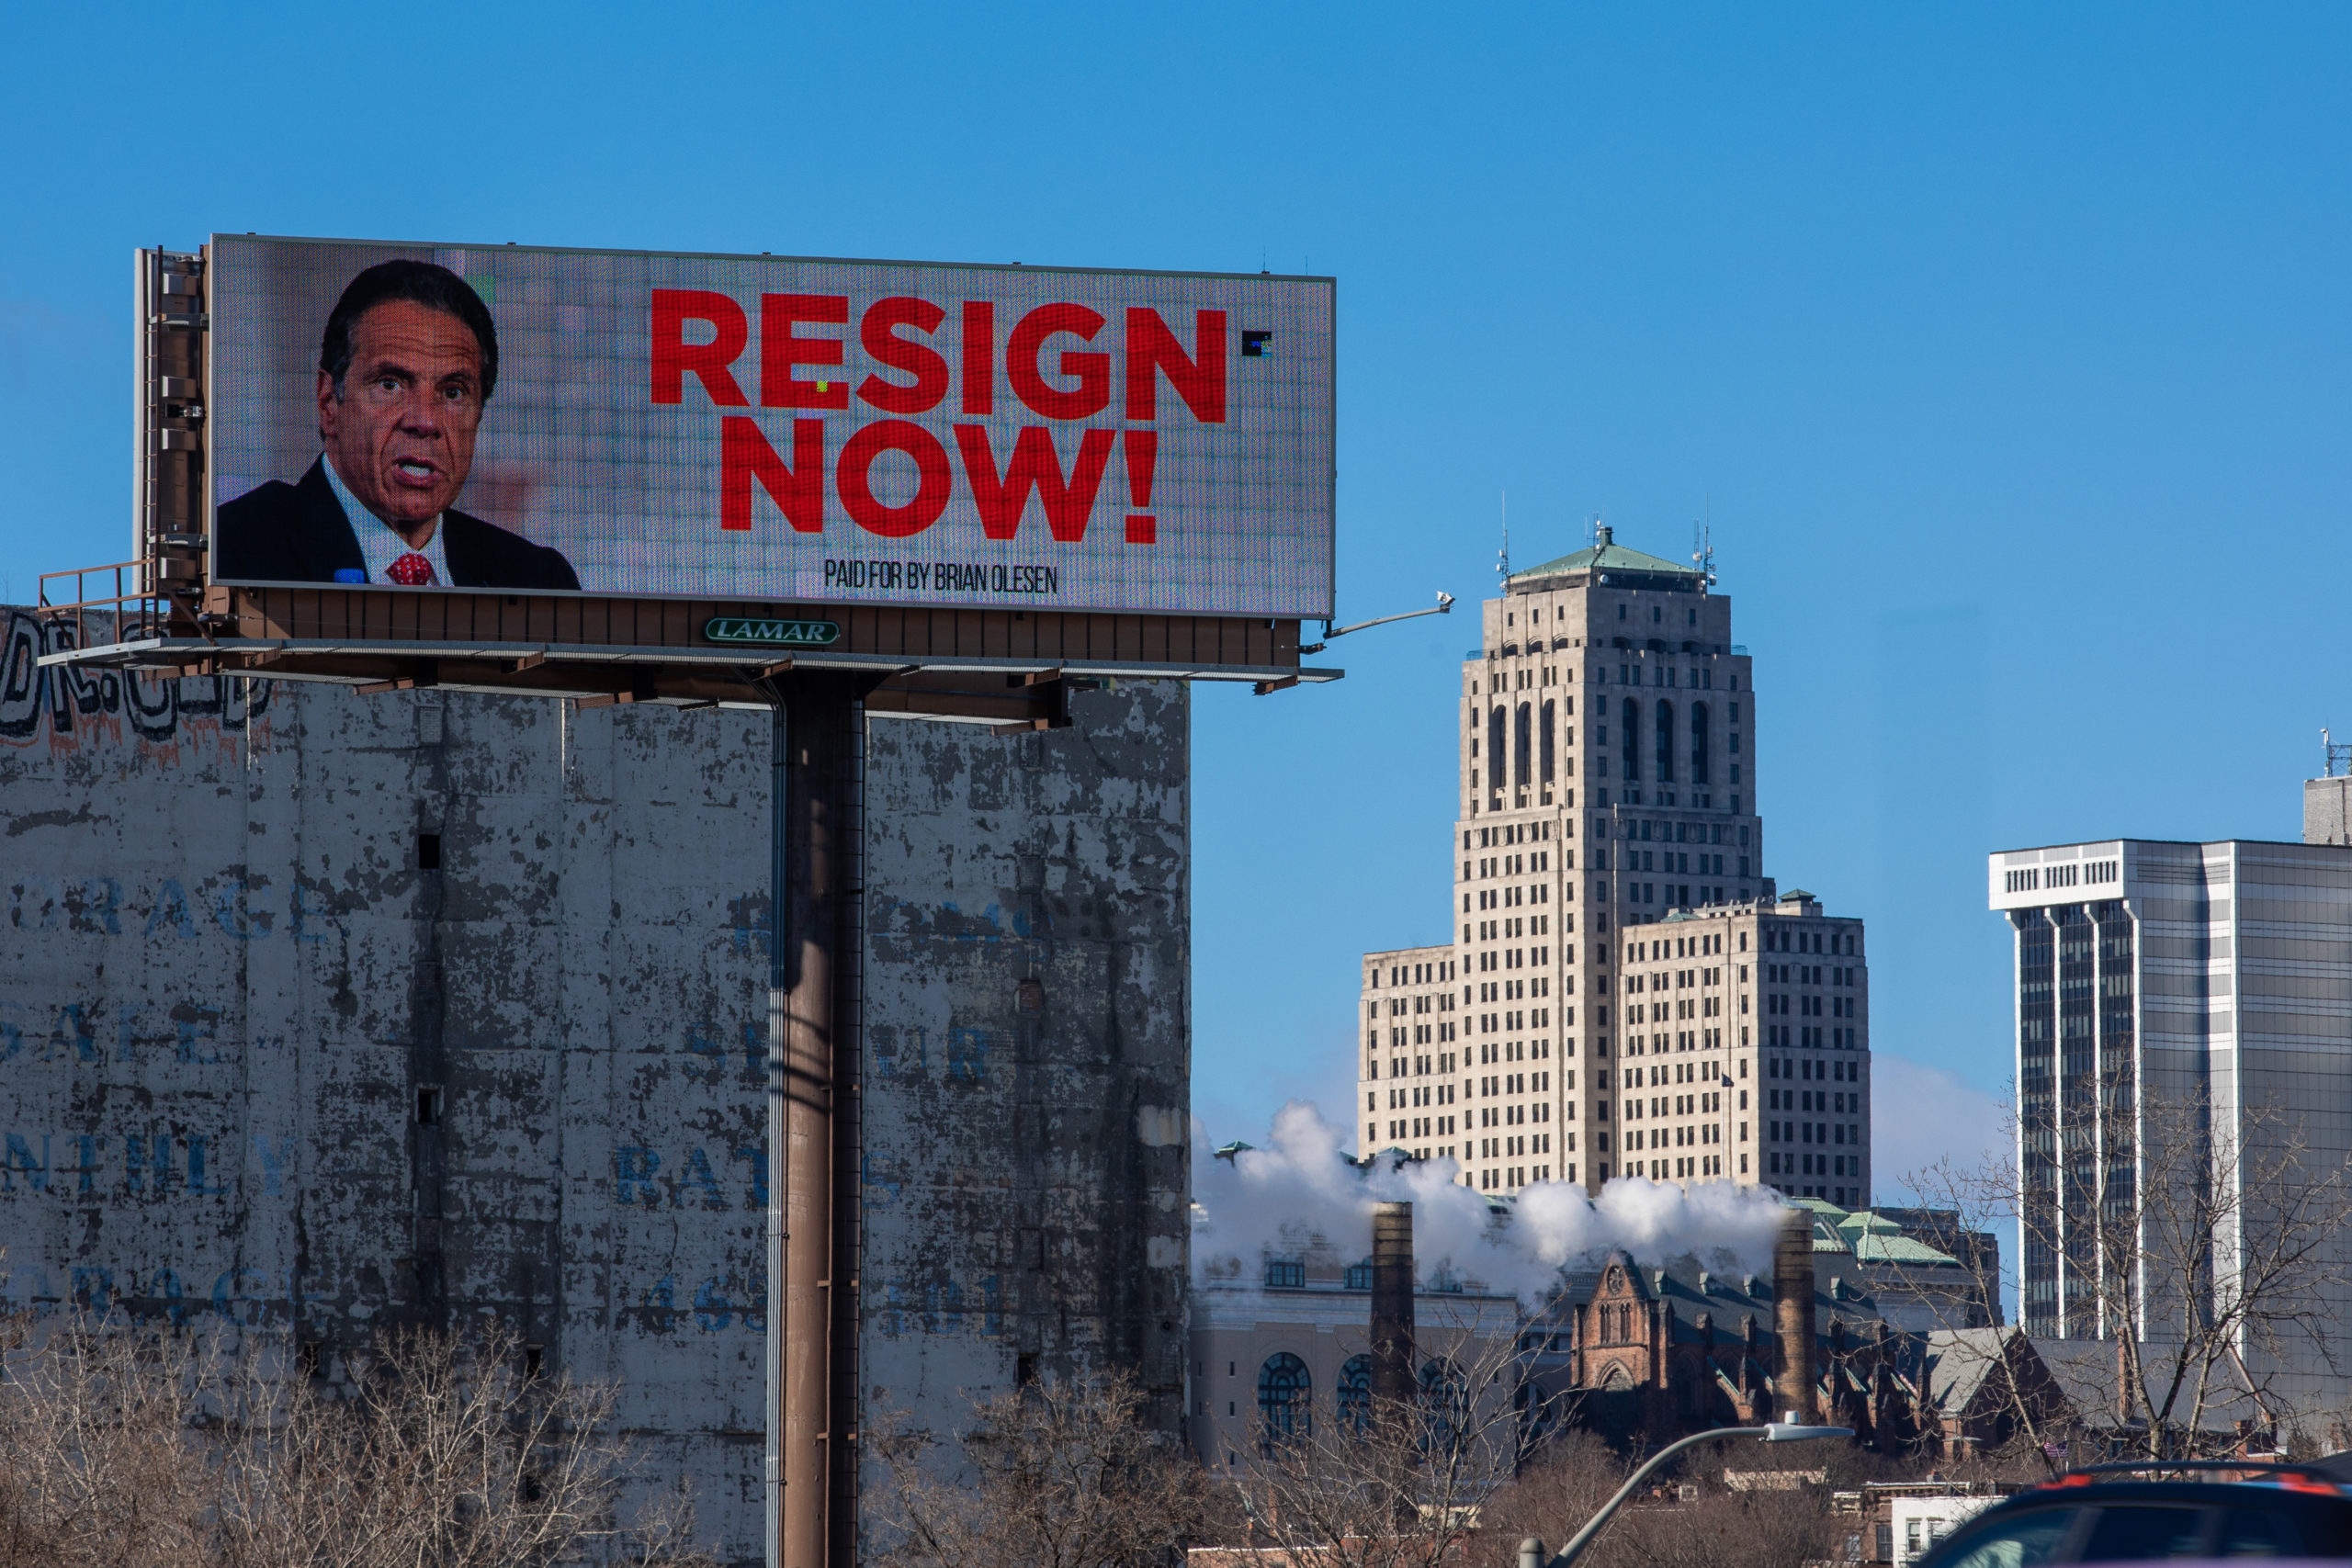 A billboard urging New York Governor Andrew Cuomo to resign is seen near downtown on March 2, 2021 in Albany, New York. (Matthew Cavanaugh/Getty Images)